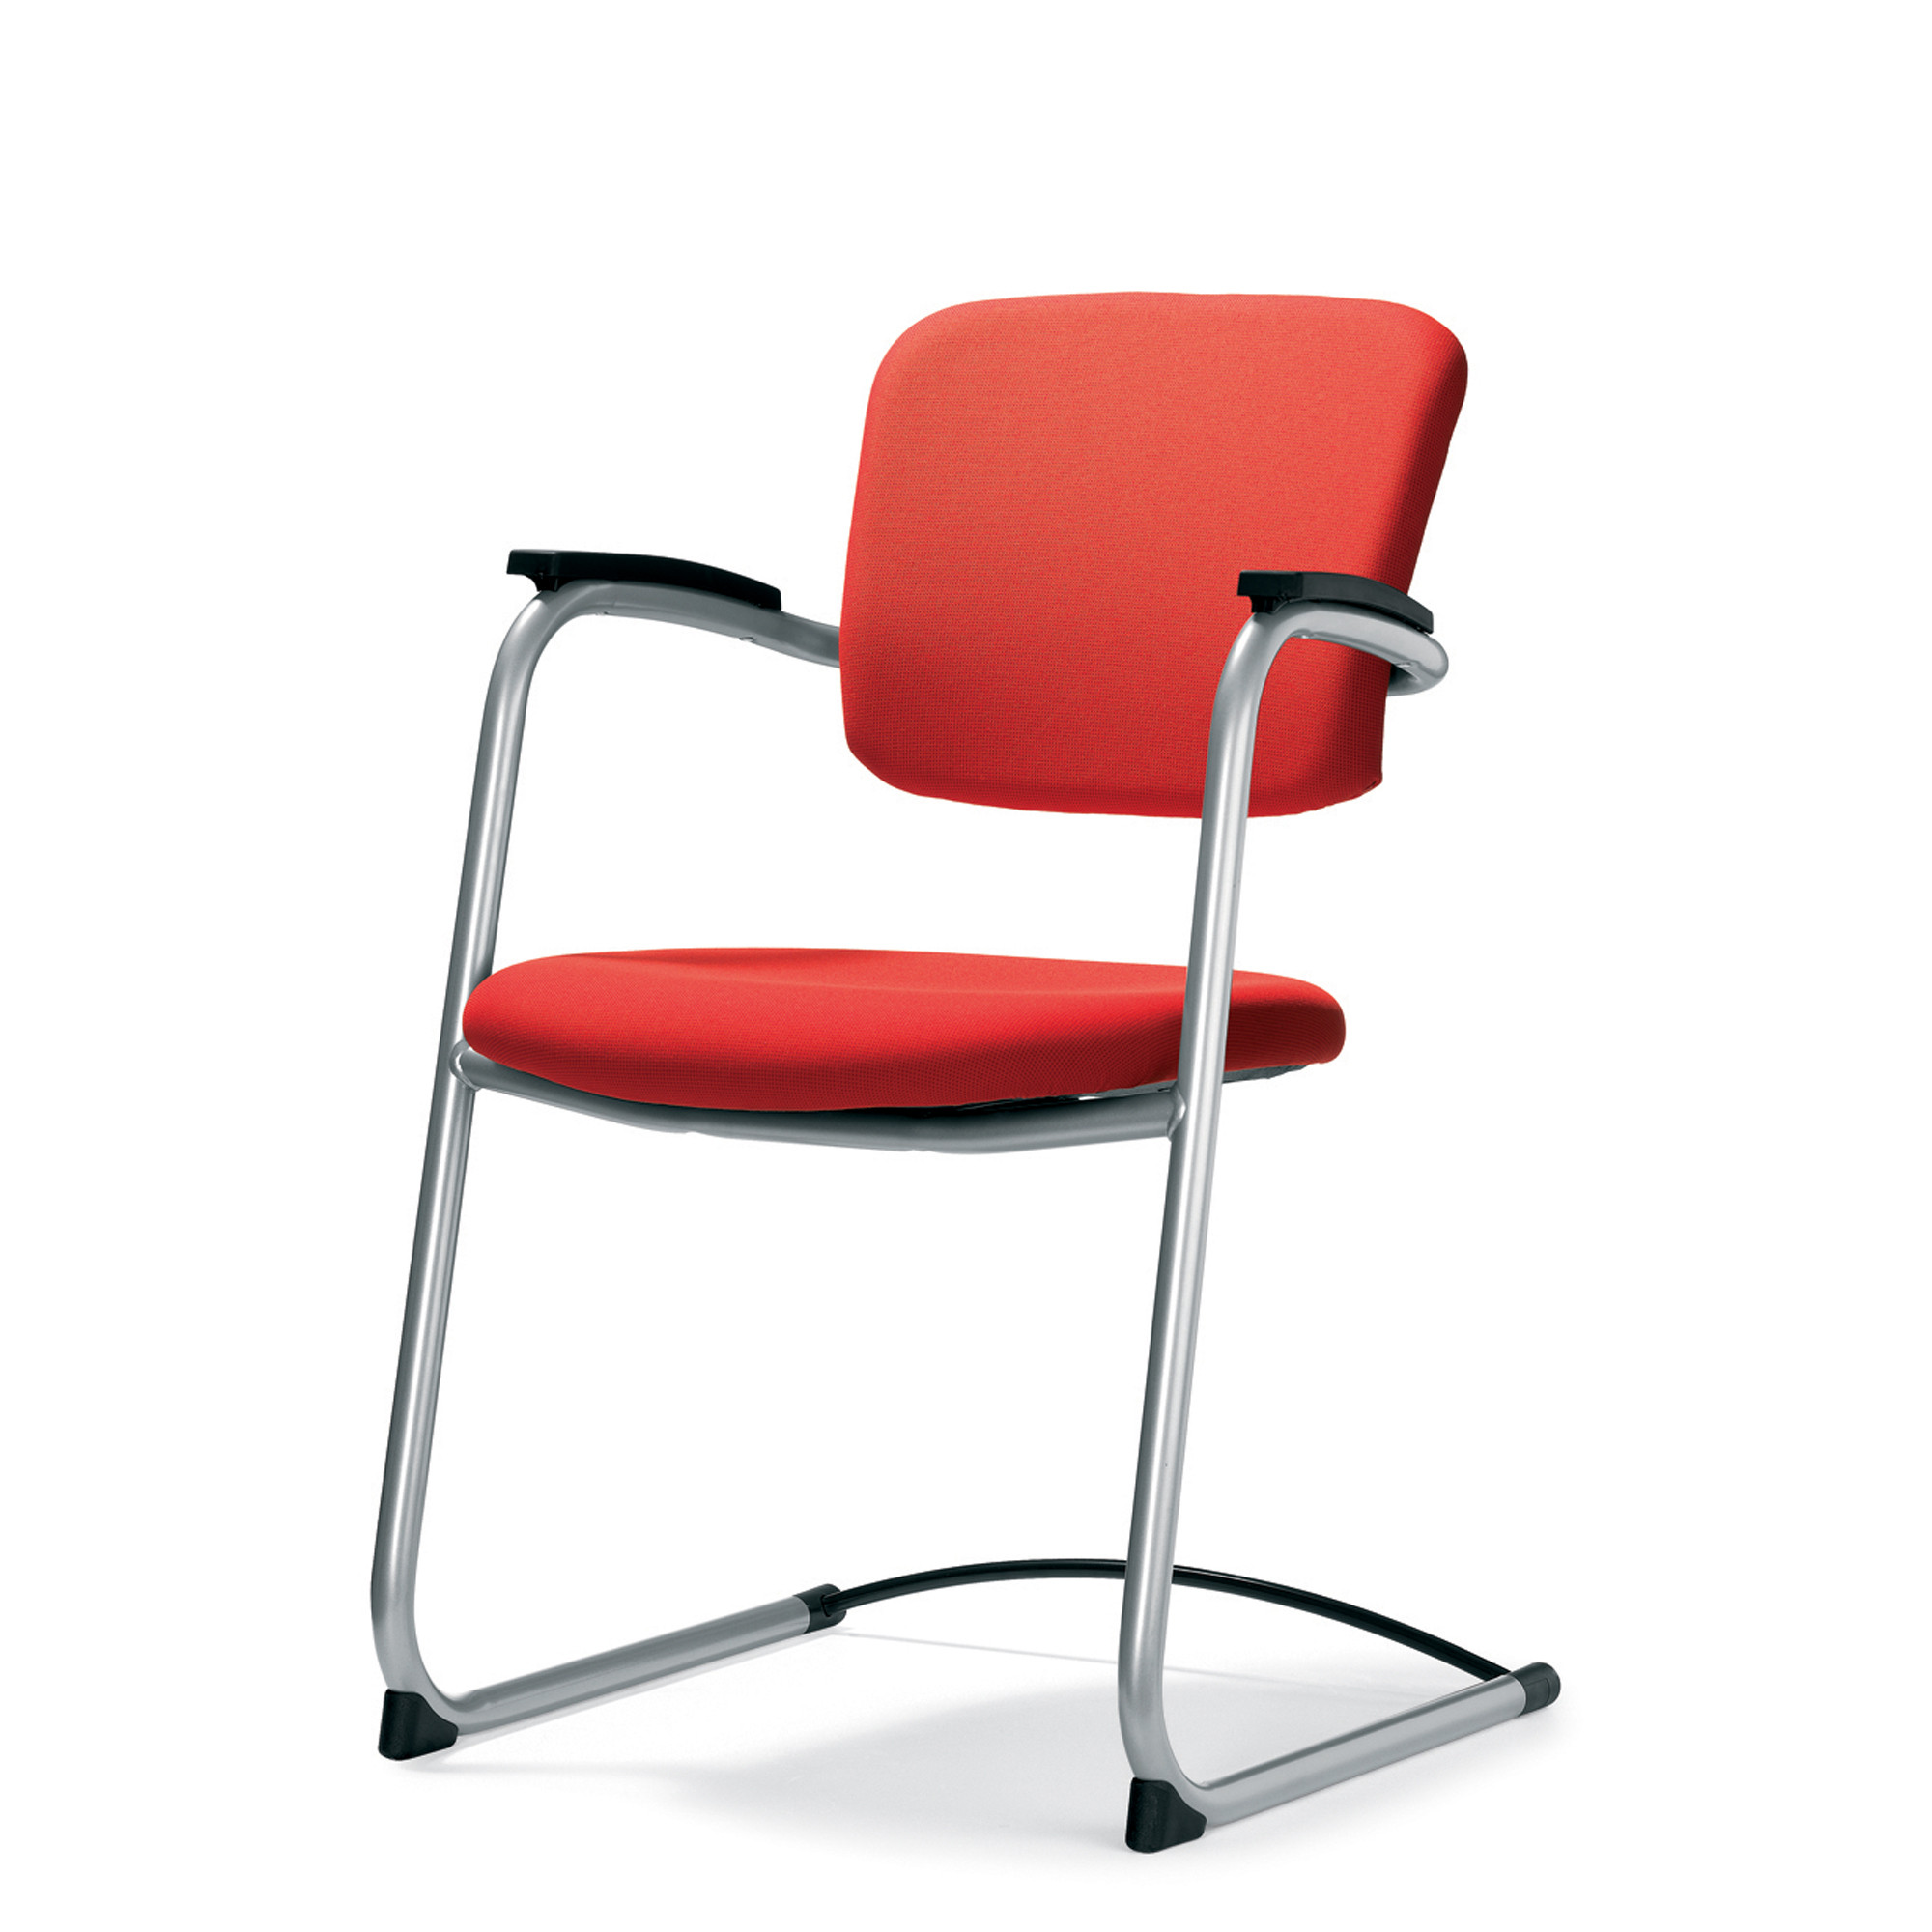 Ahrend 262 Cantilever Chairs